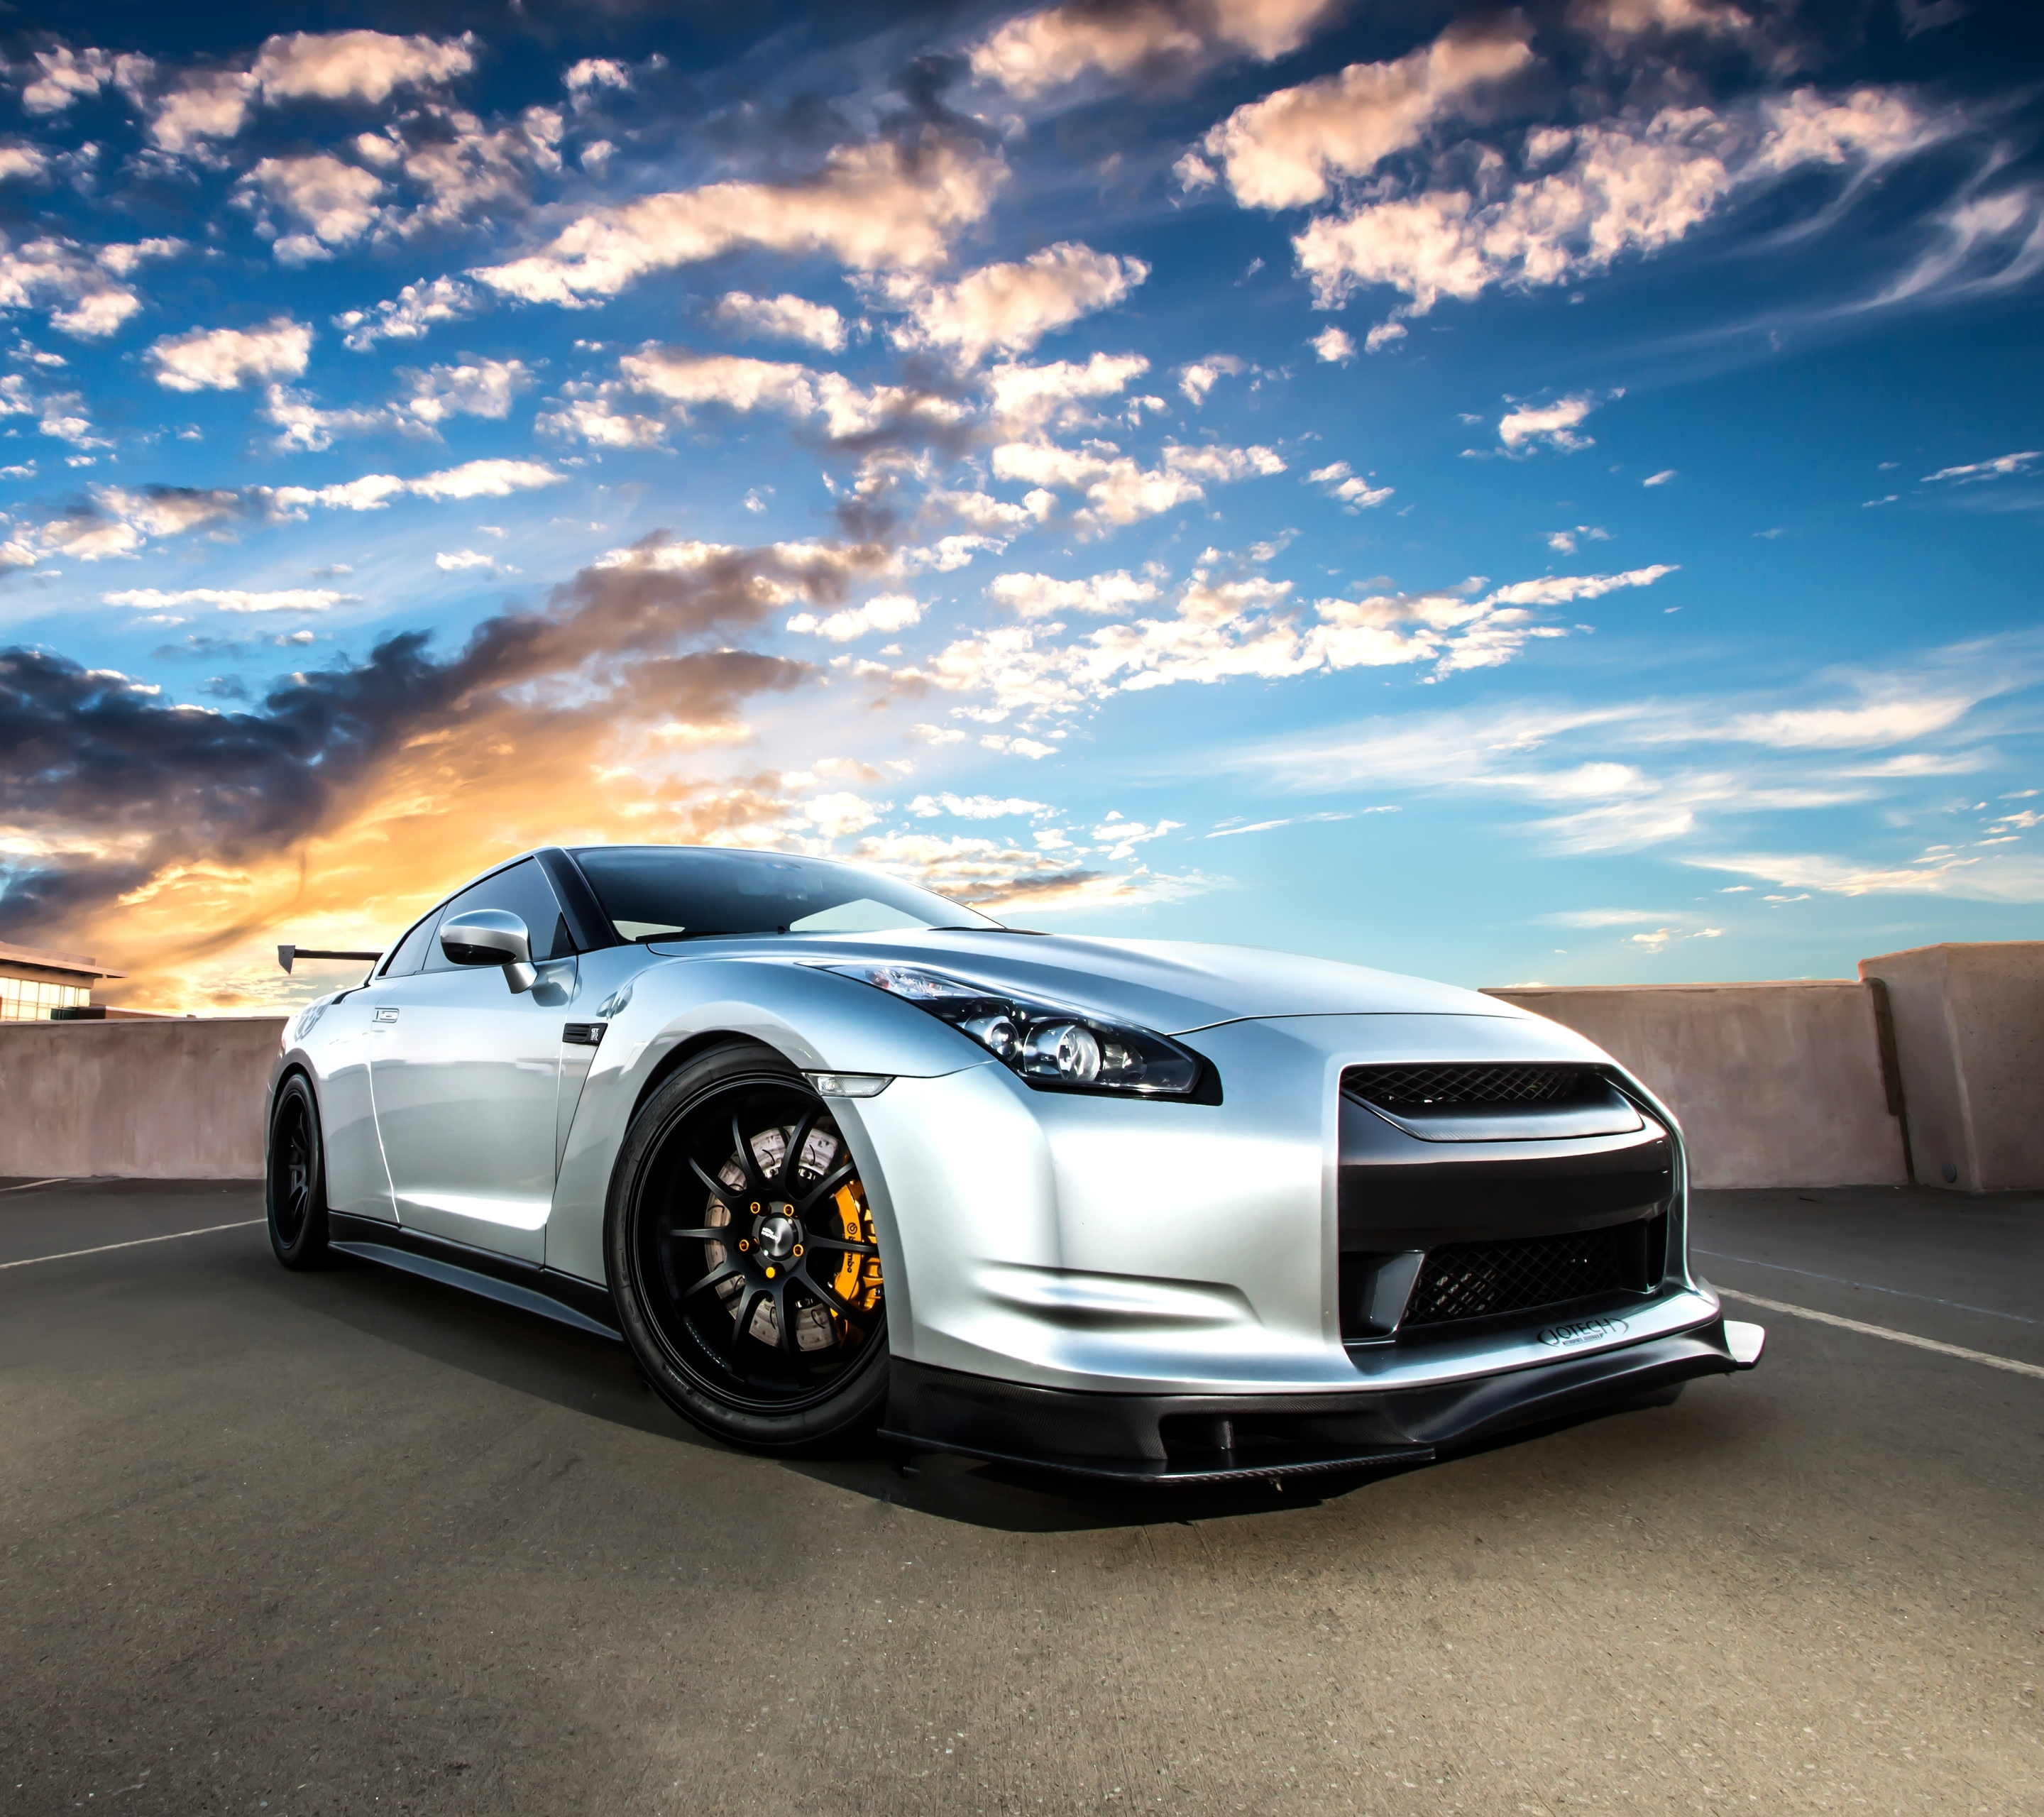 Download Nissan Gtr Wallpapers To Your Cell Phone: Nissan Gtr Wallpaper (94 Wallpapers)